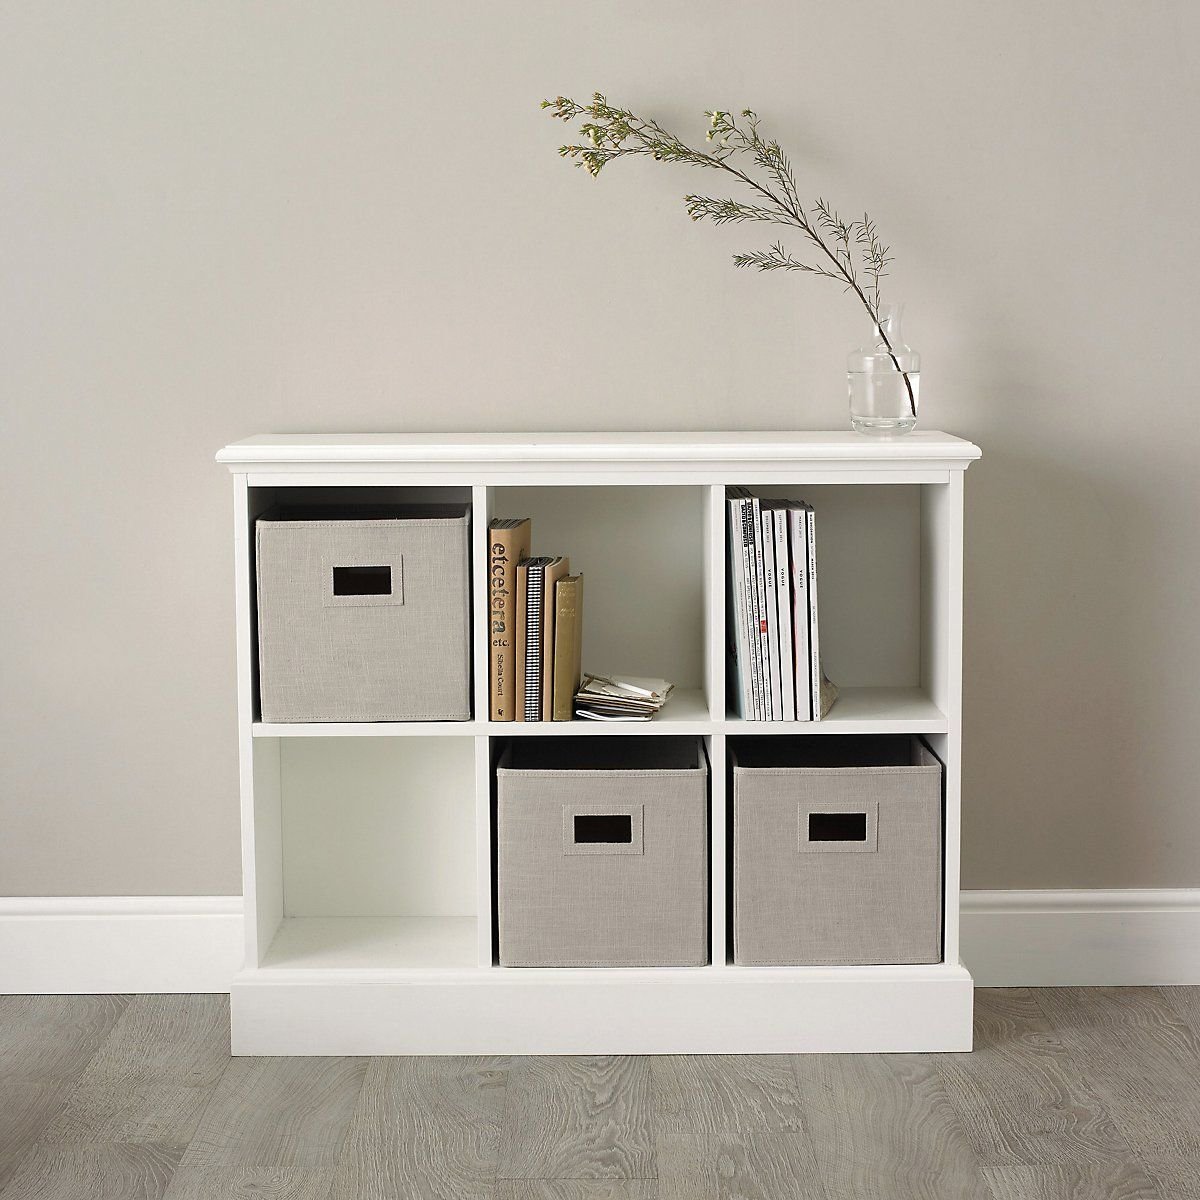 Classic 6 Cube Storage Unit Bedroom Furniture The White